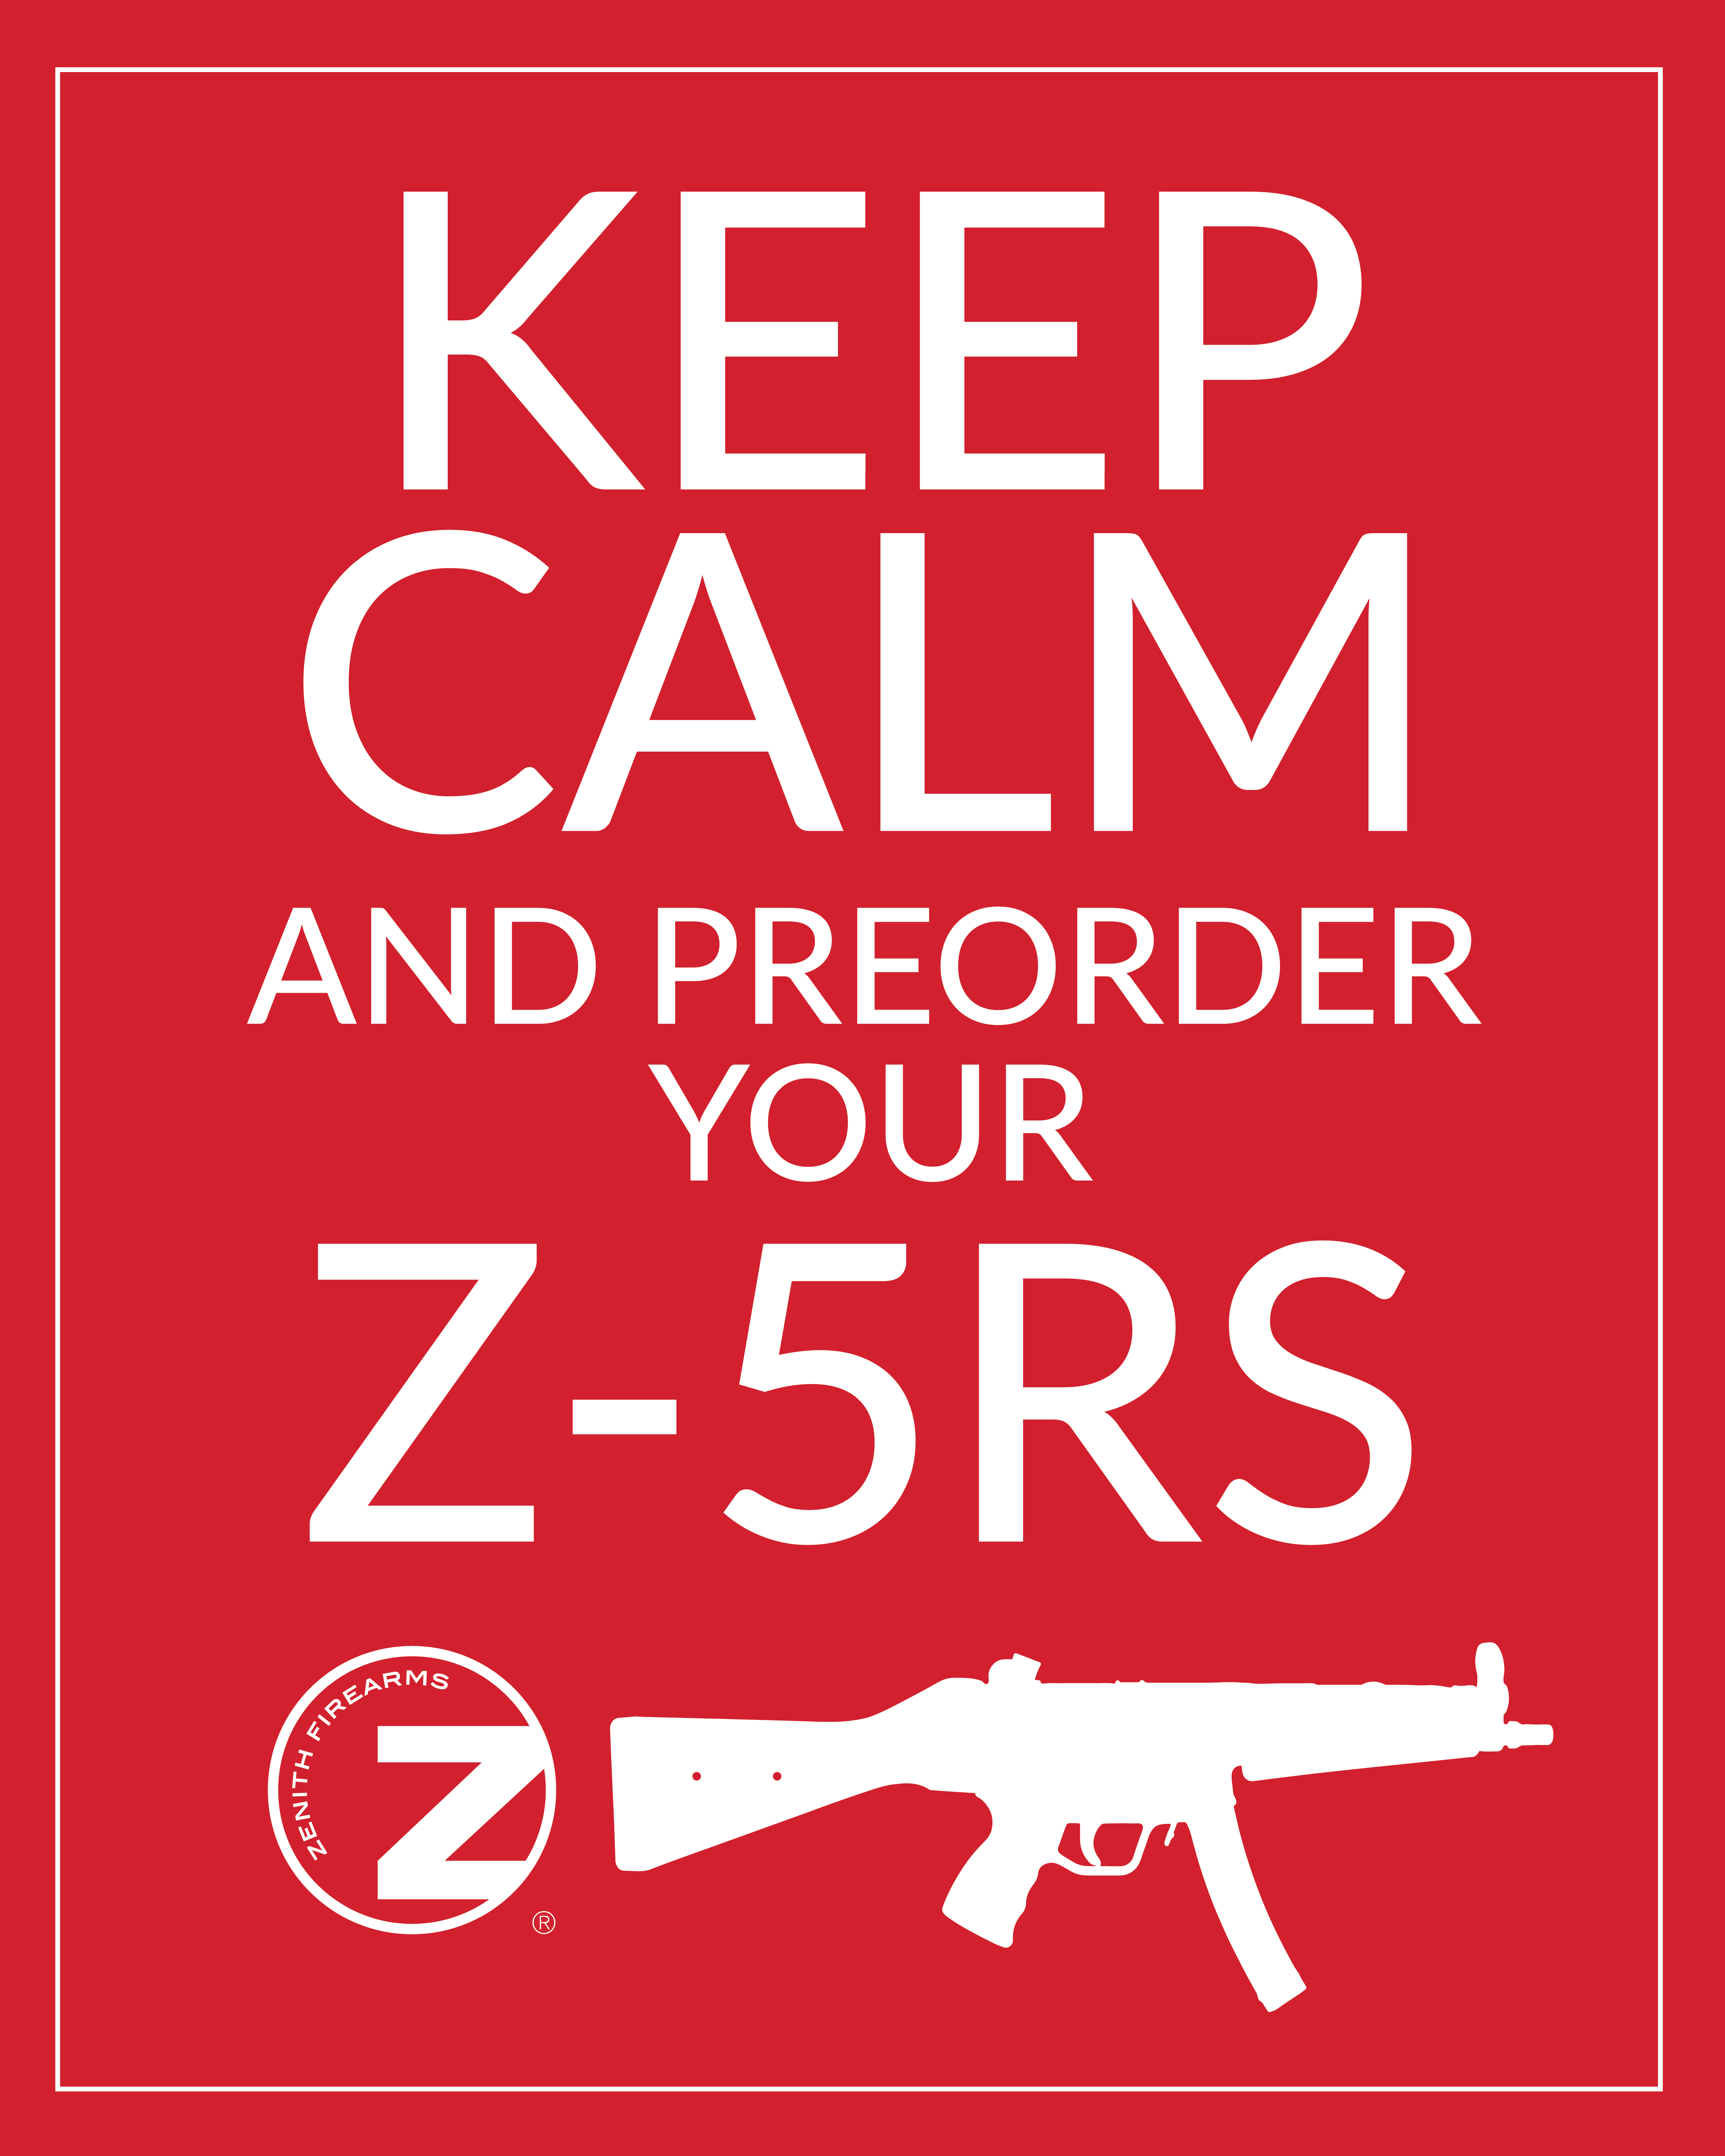 You can still pre-order the Z-5RS-keep_calm.png